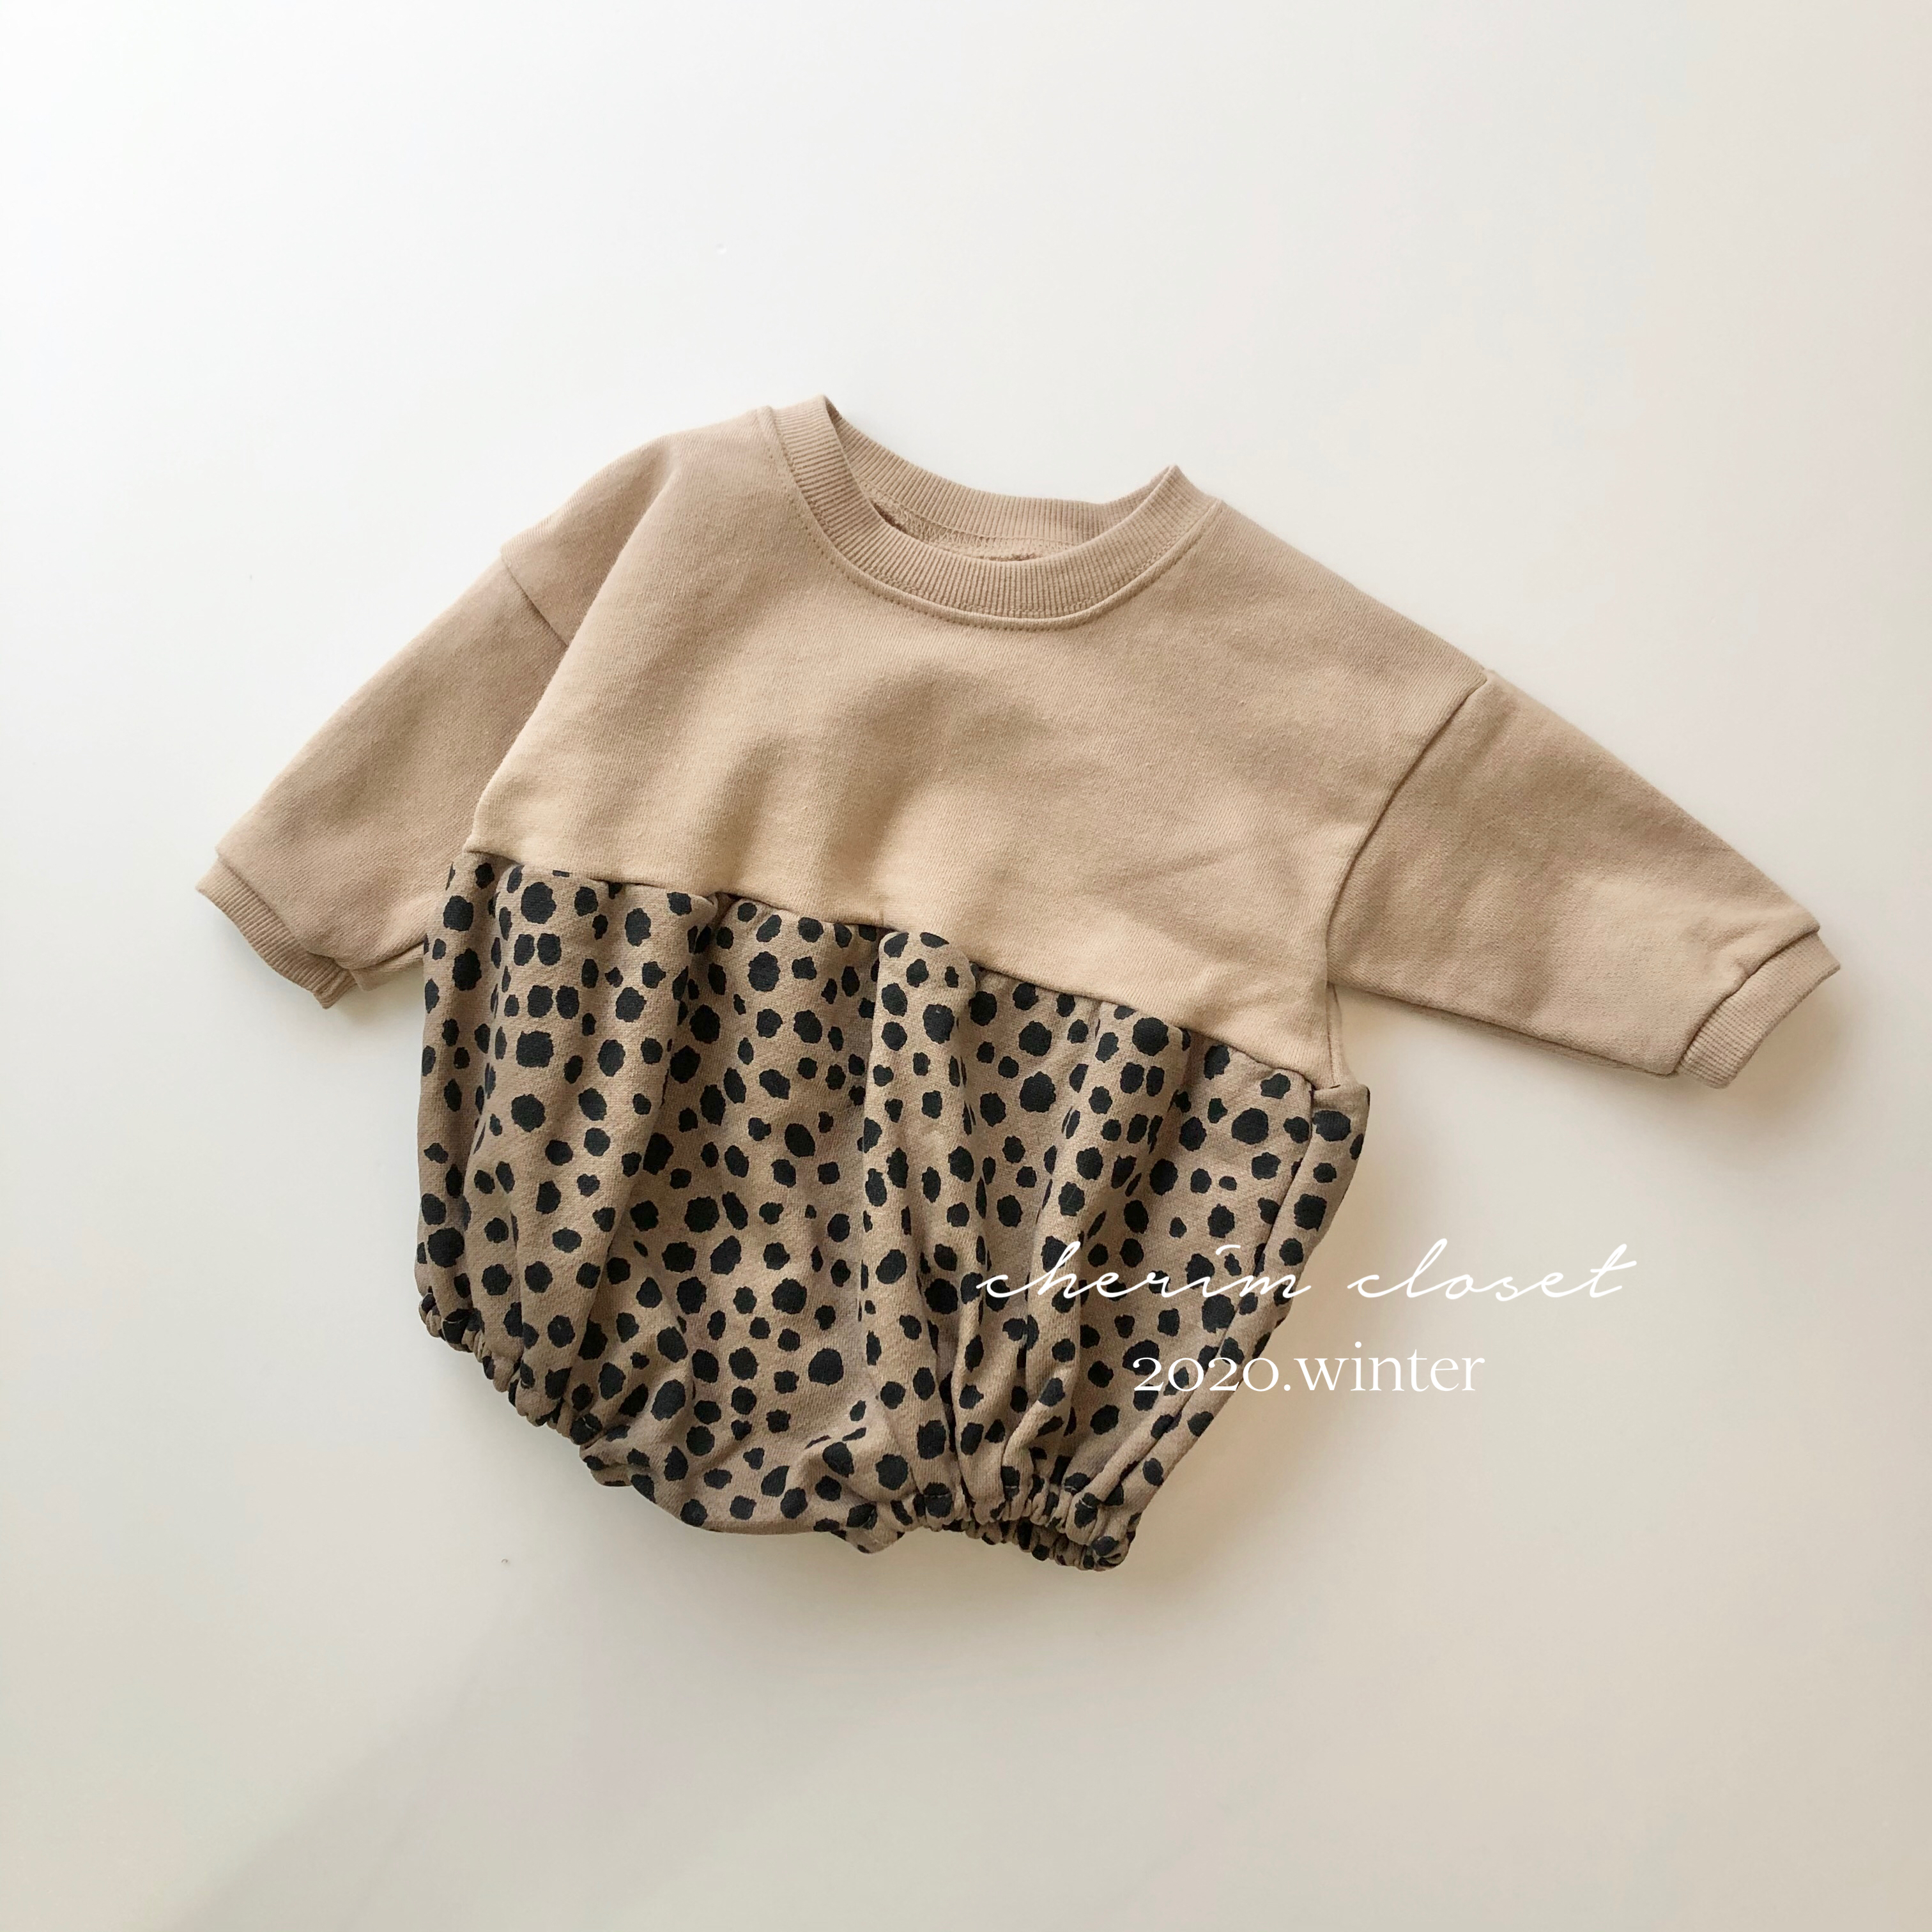 NO.949 leopard rompers